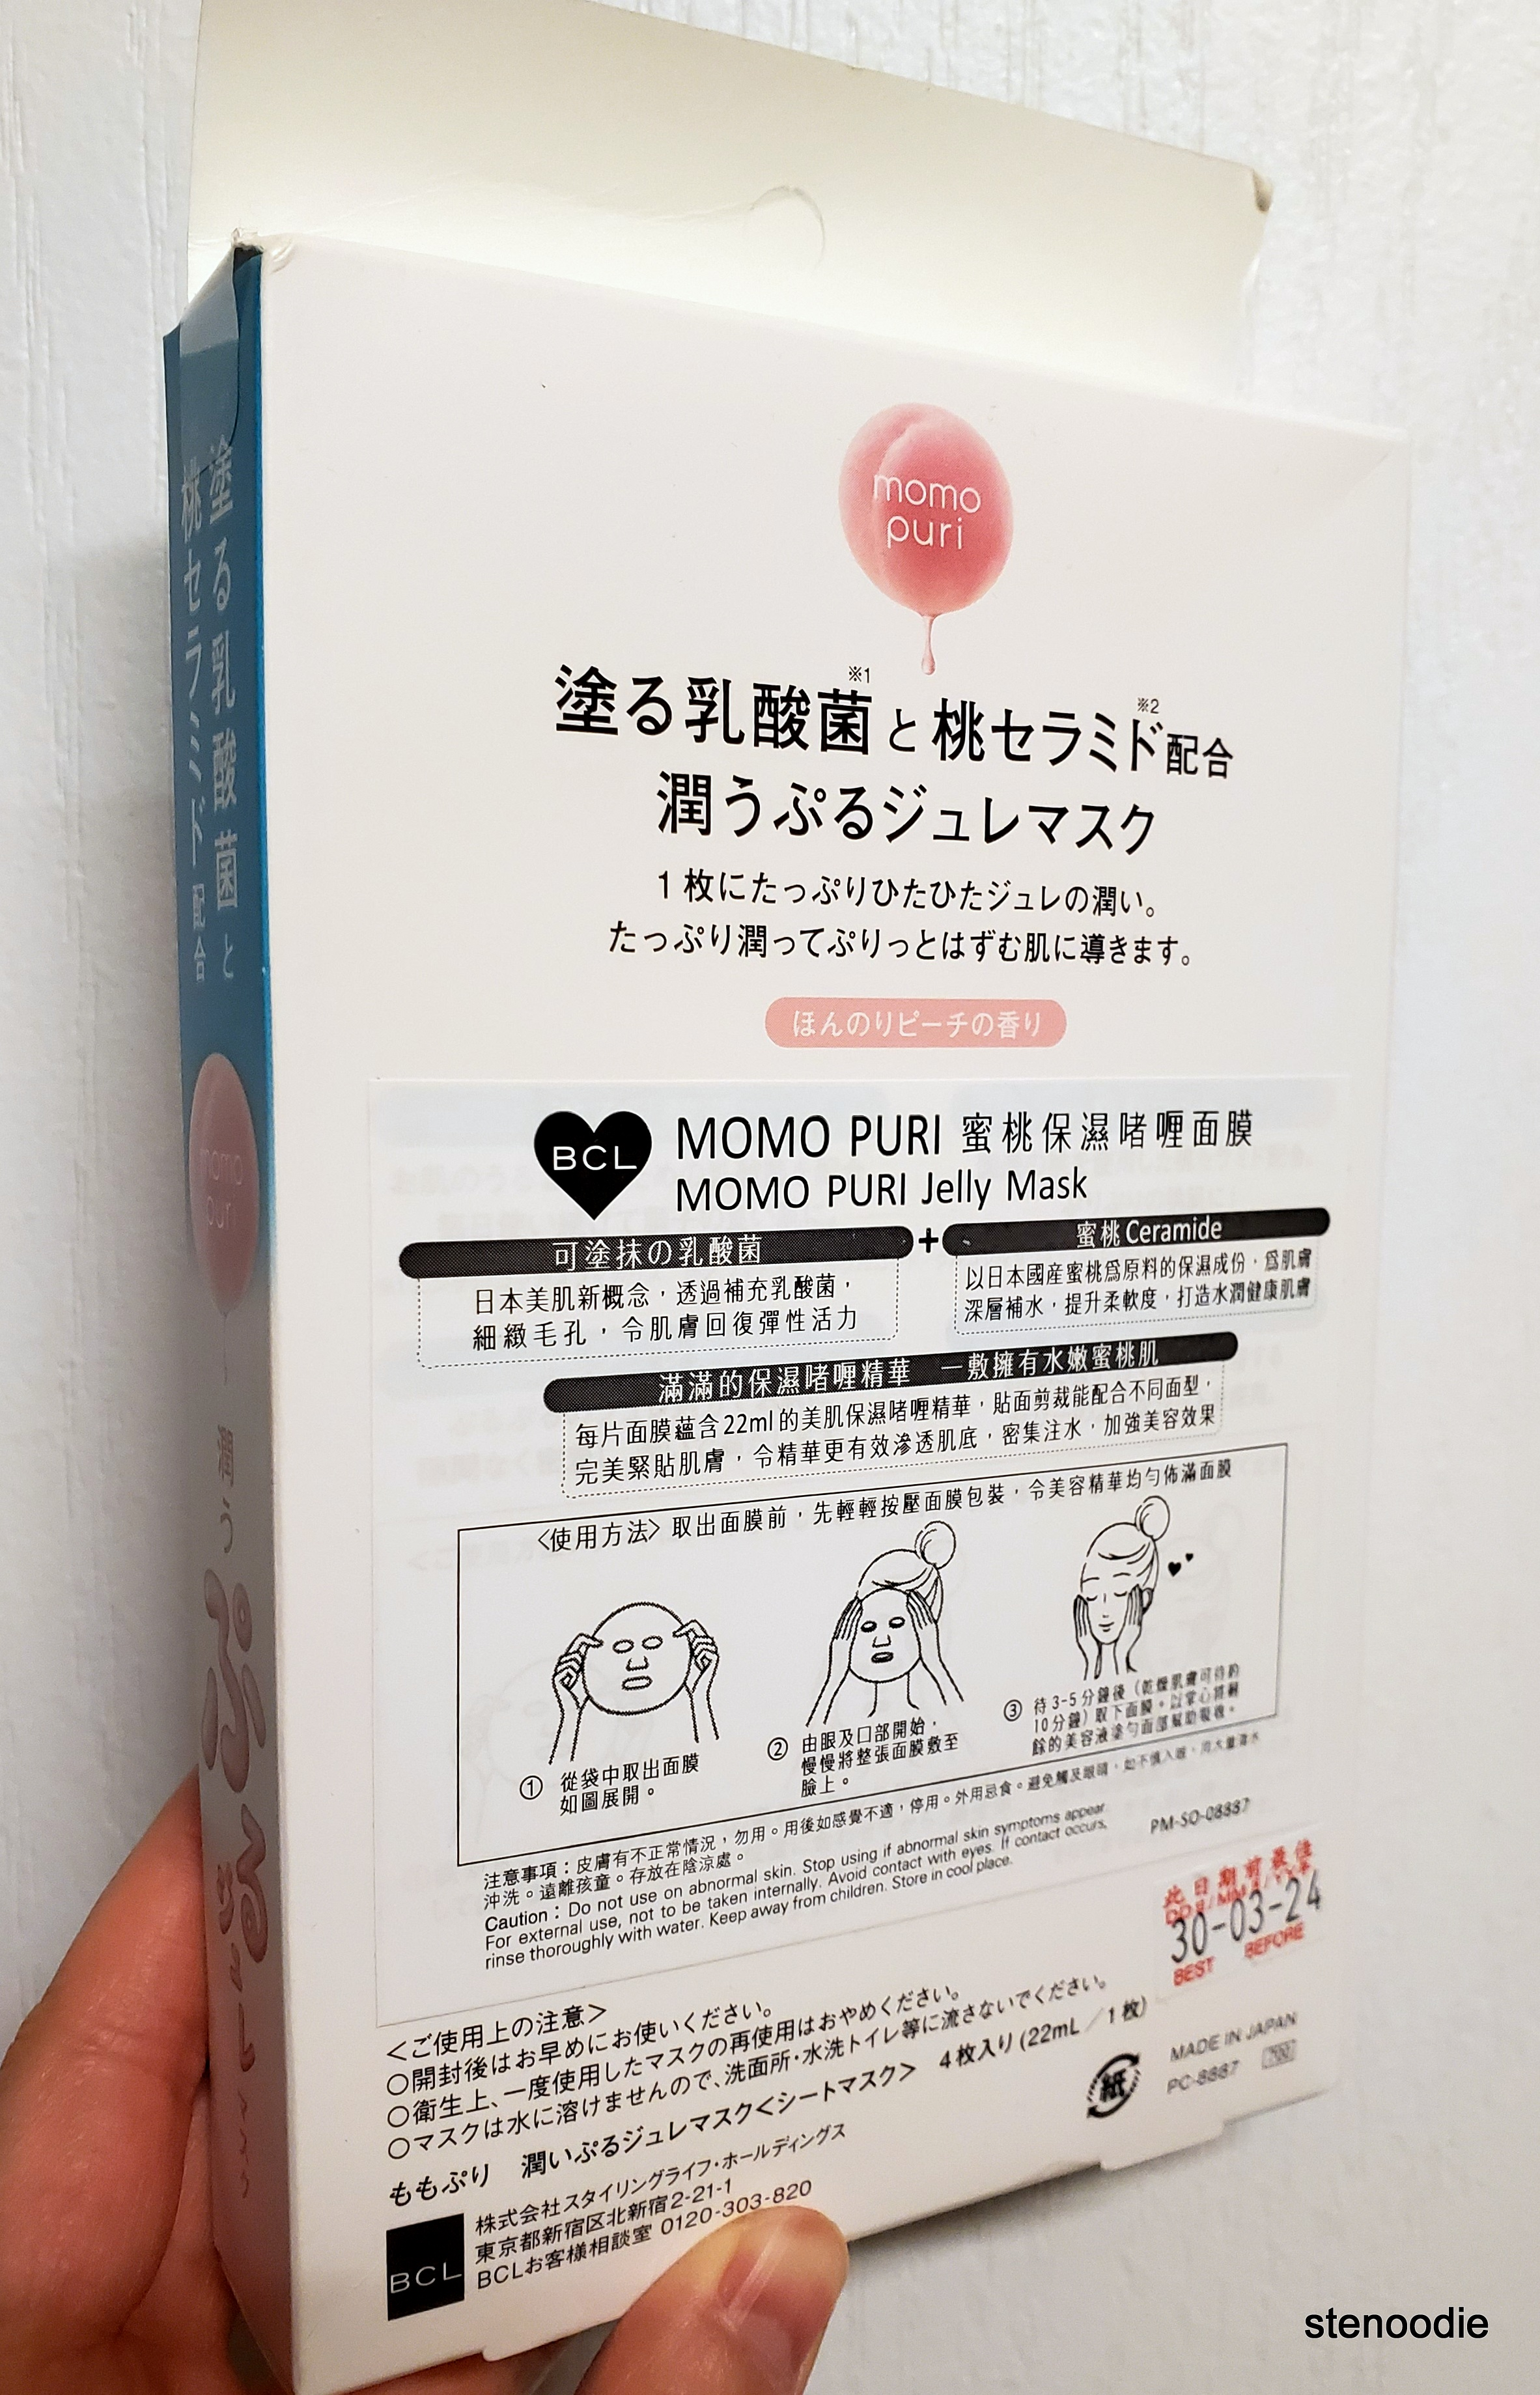 BCL Momo Puri Jelly Mask back of box